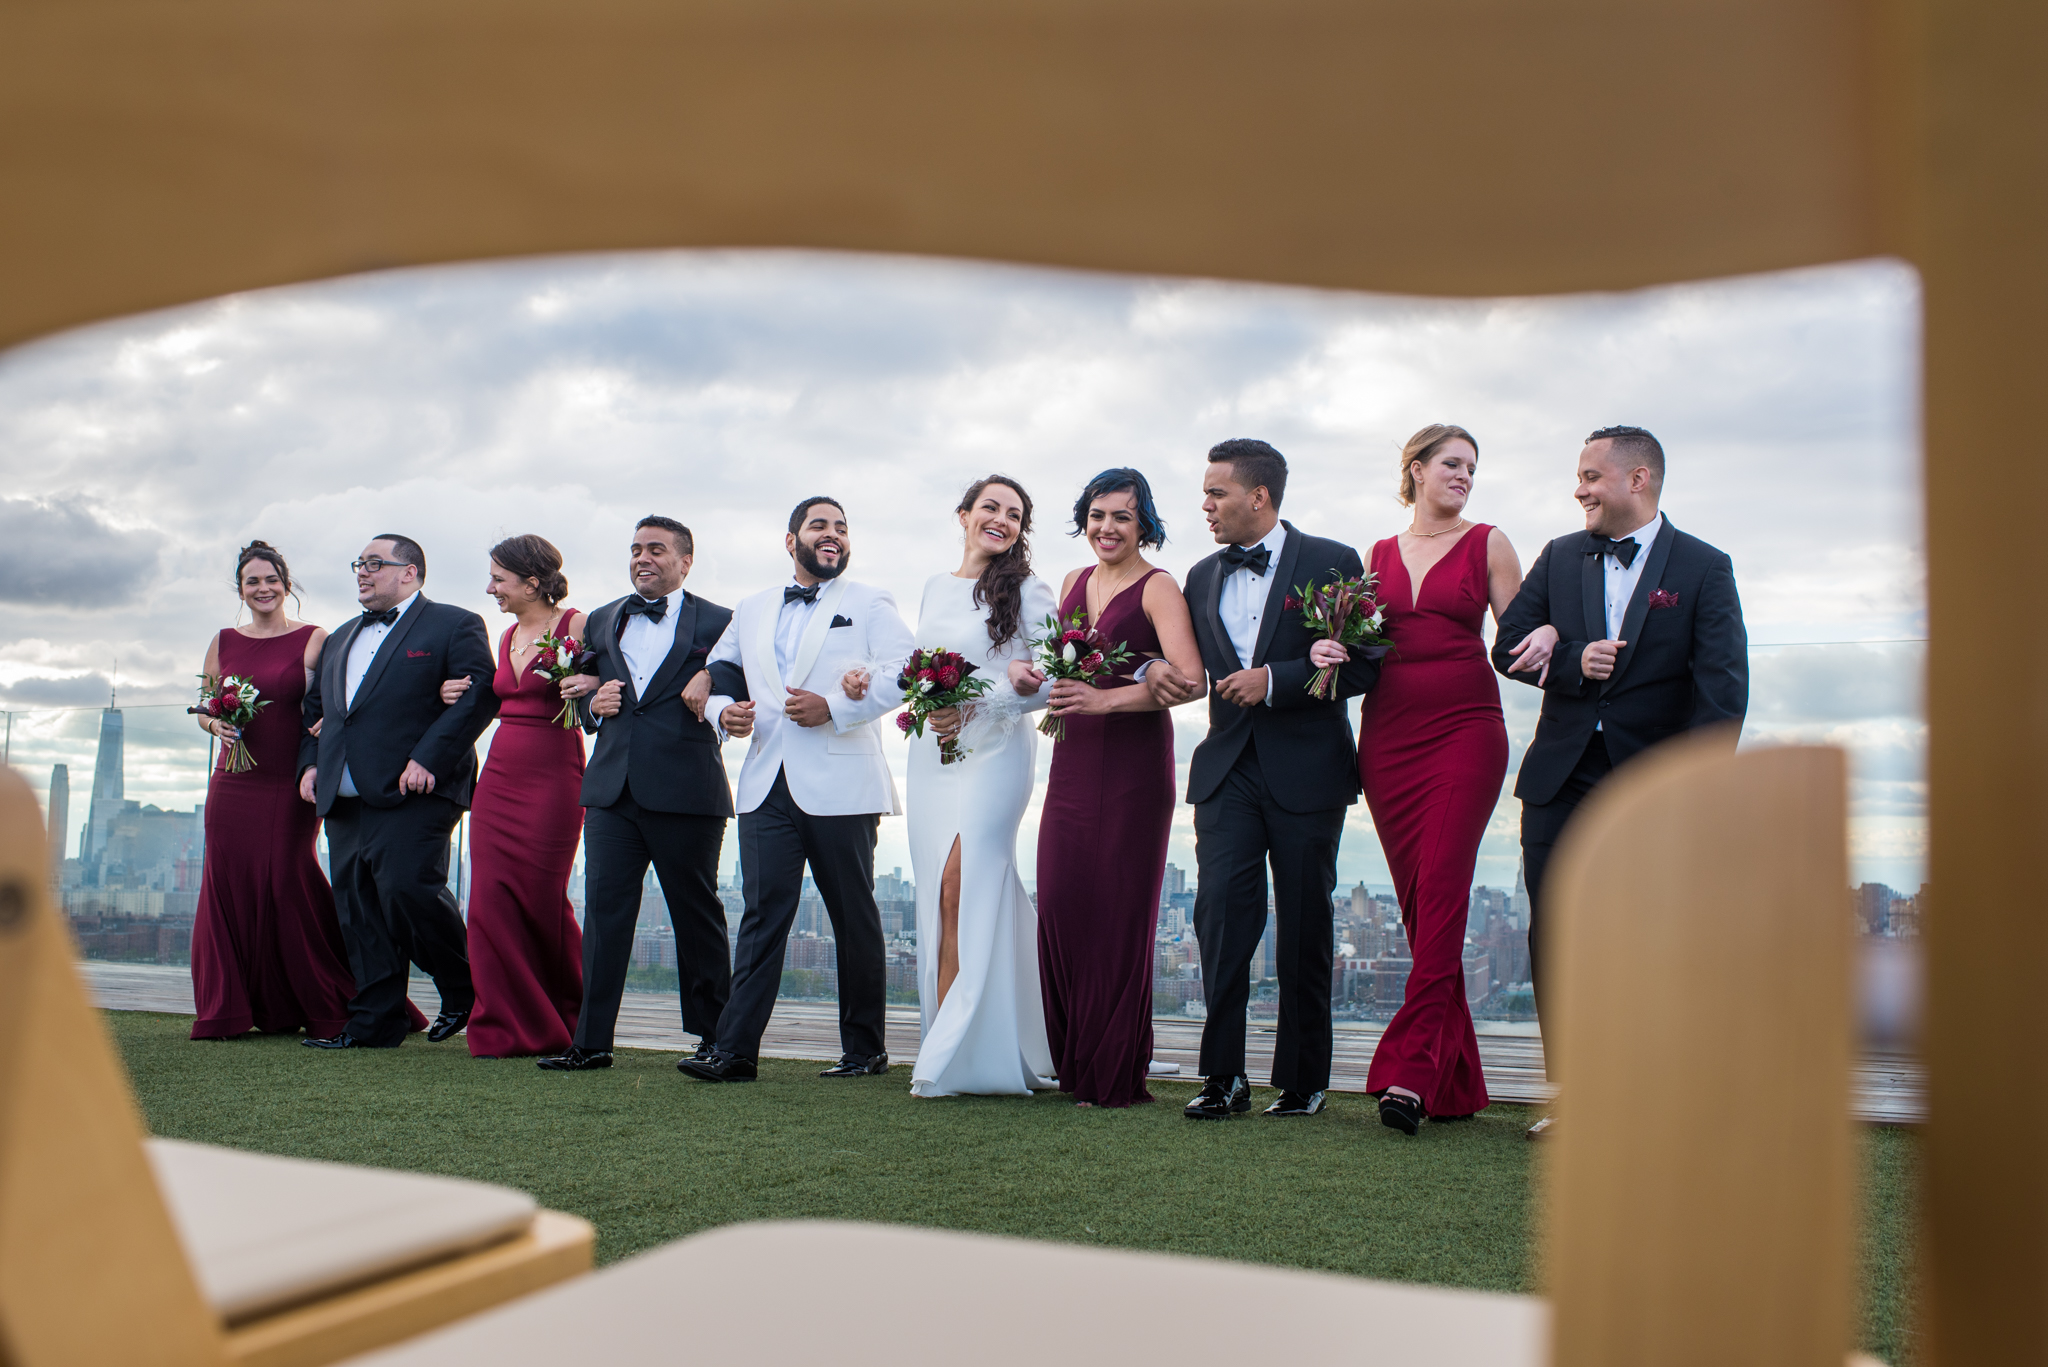 Bridal Party - Melissa & Ivan by Romina Hendlin-1.jpg